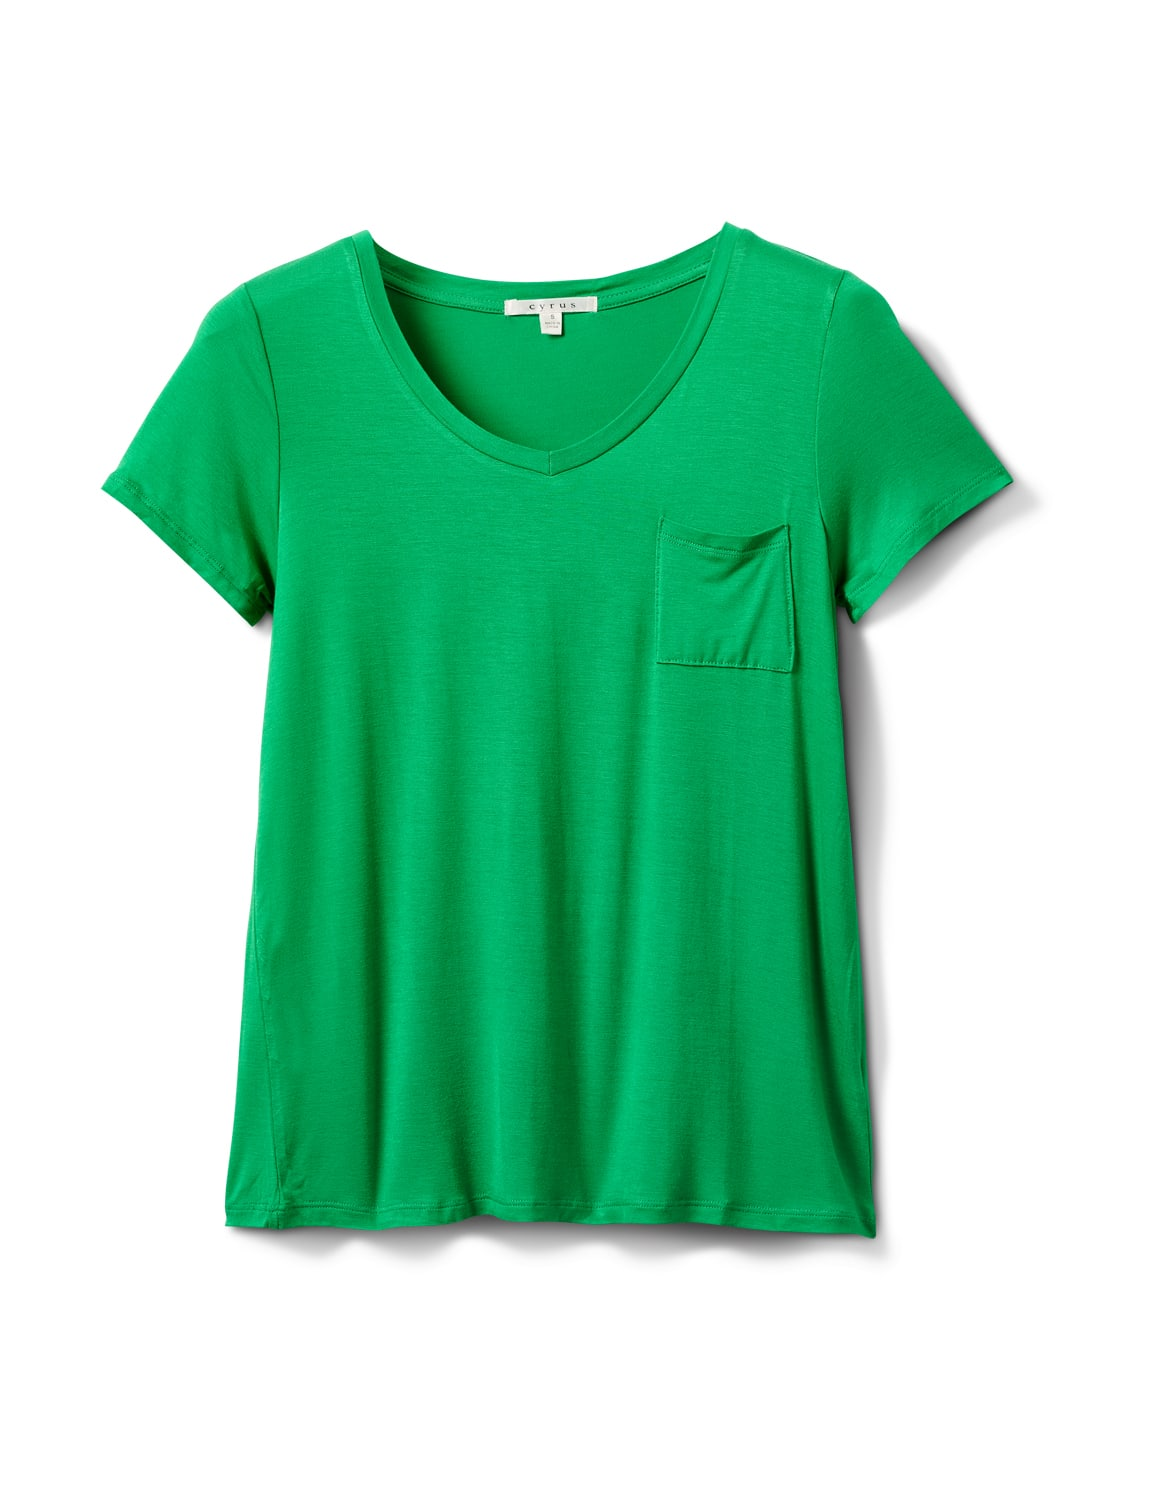 Rayon Span V-Neck Tee - Kelly Green - Front